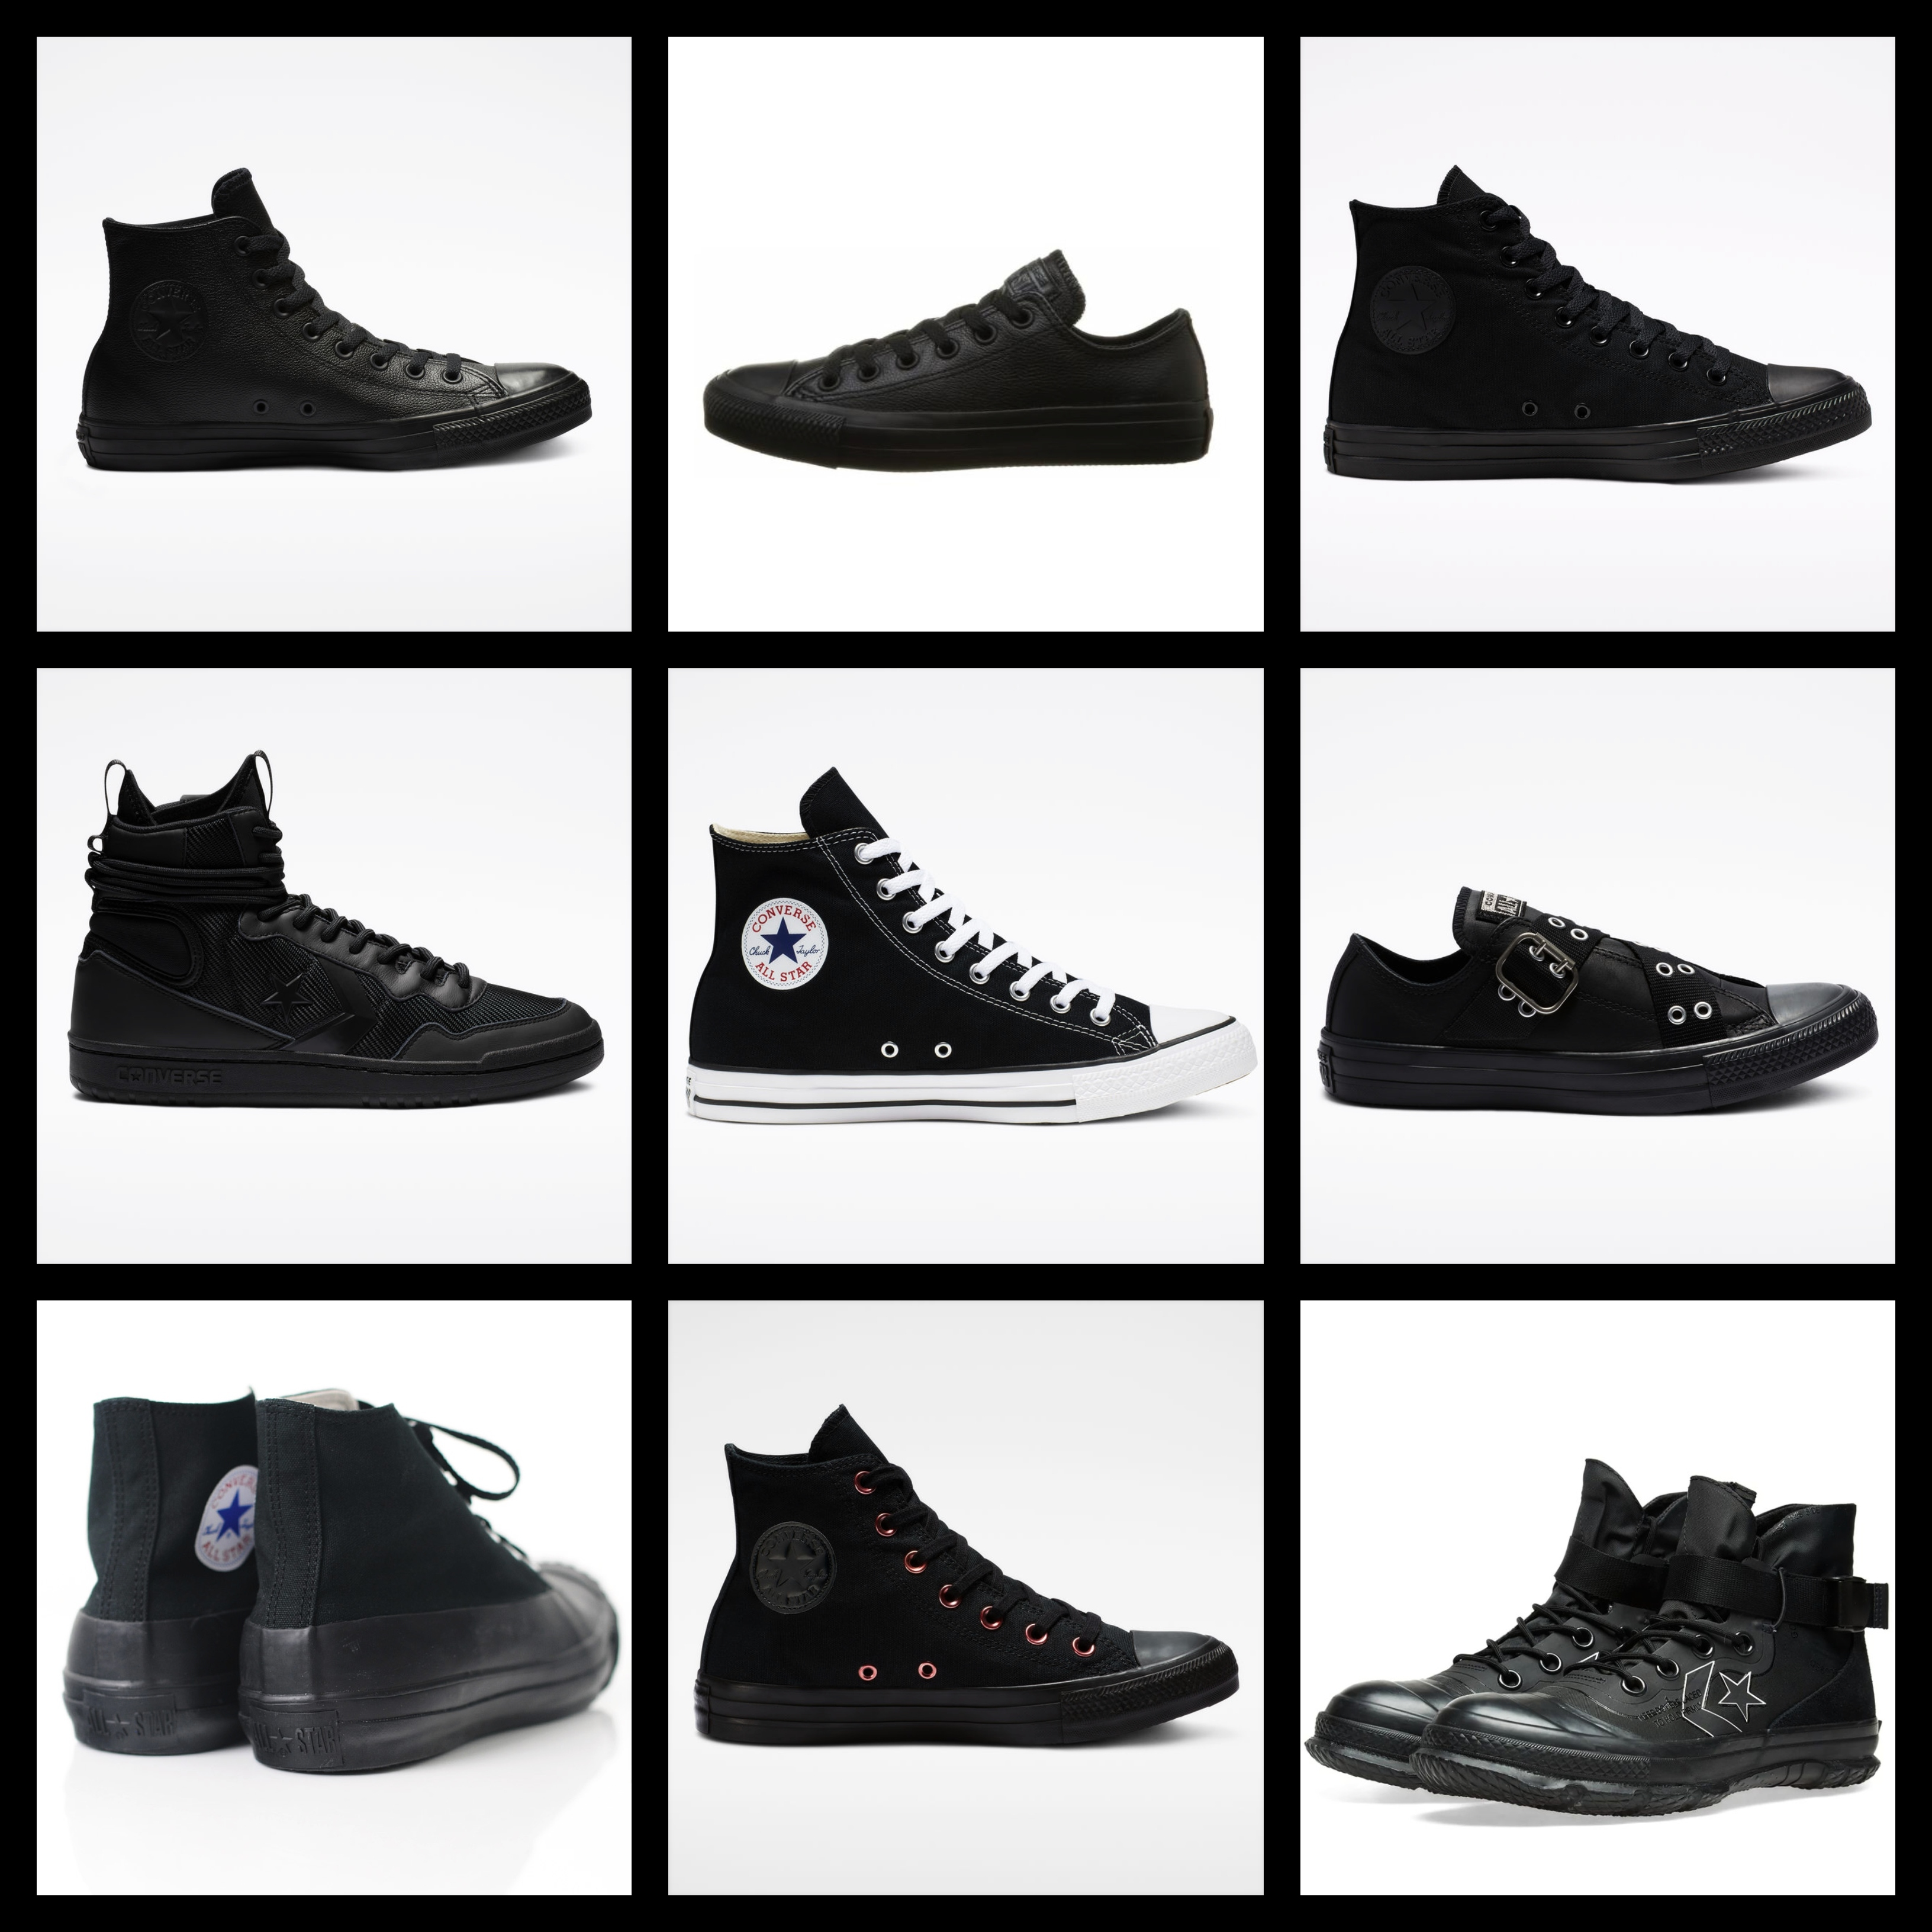 df2c61e46d8 Converse Shoes | Classic Chucks in Every Color, CONS & Collaborations